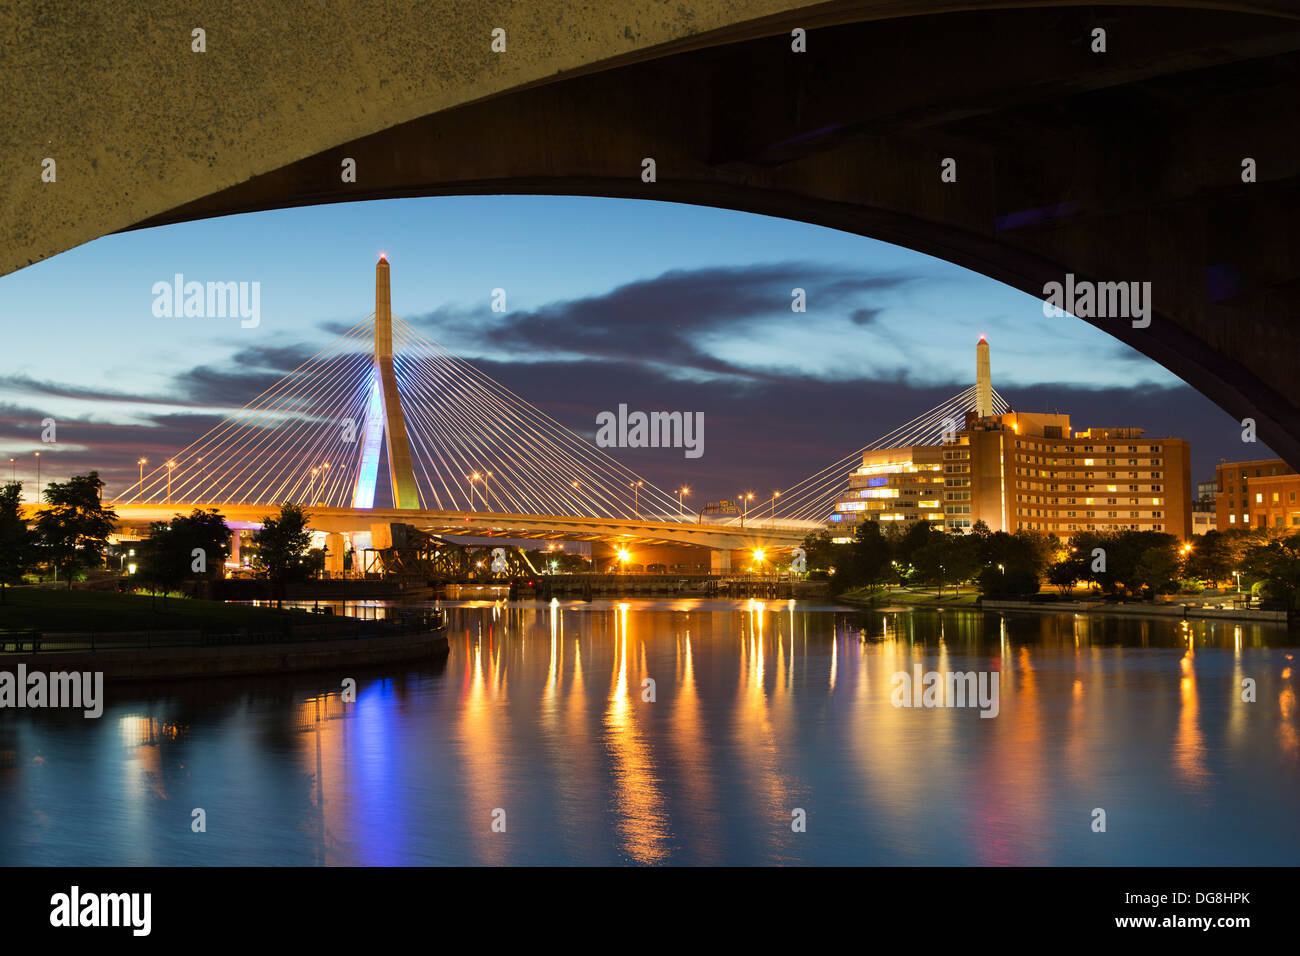 Leonard P. Zakim Bunker Hill Memorial Bridge (Puente Zakim) y Charles River, en Boston, Massachusetts, EE.UU. Imagen De Stock